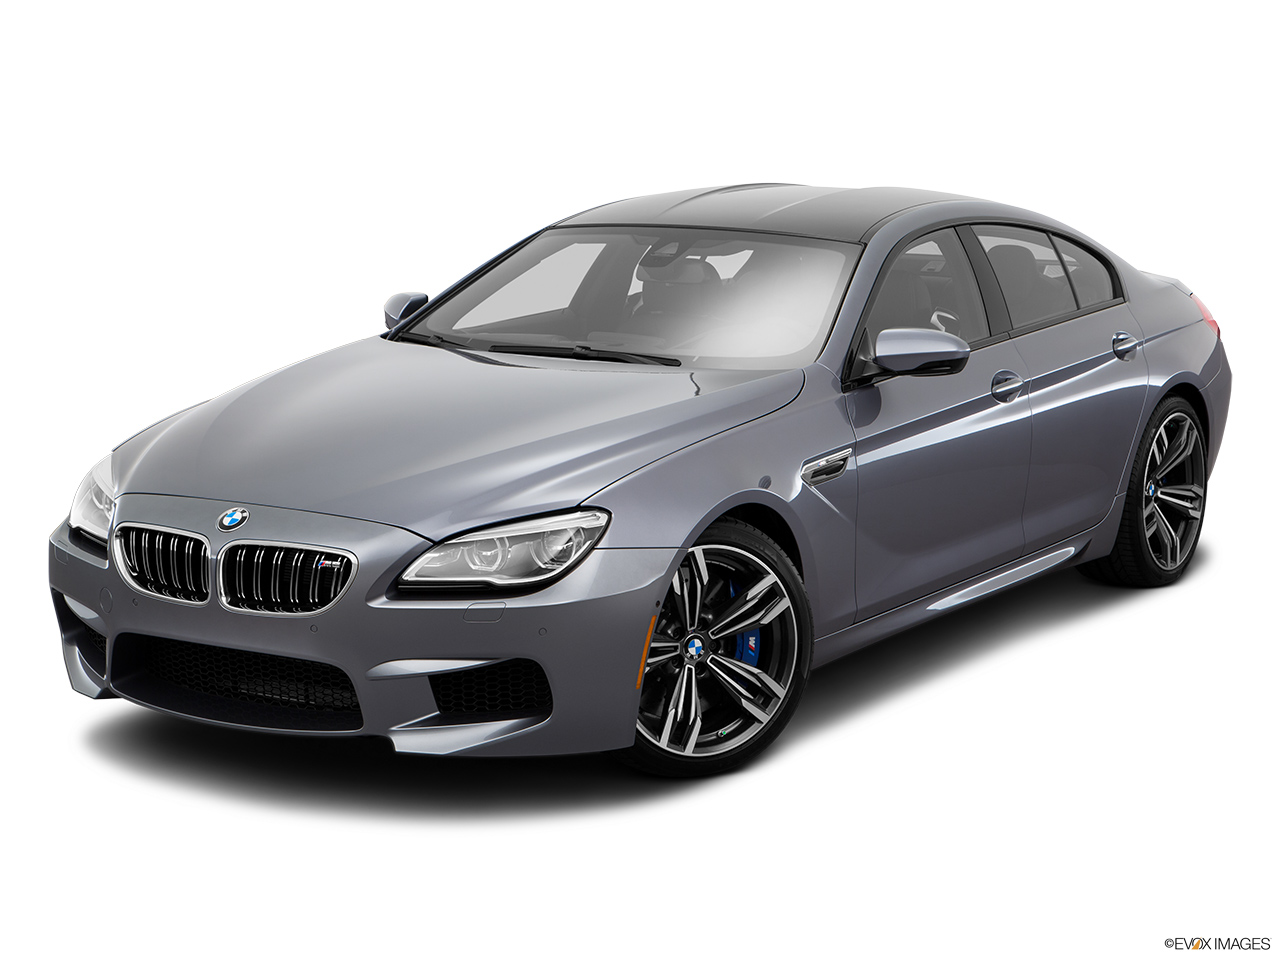 2016 bmw m6 gran coupe prices in saudi arabia gulf specs. Black Bedroom Furniture Sets. Home Design Ideas